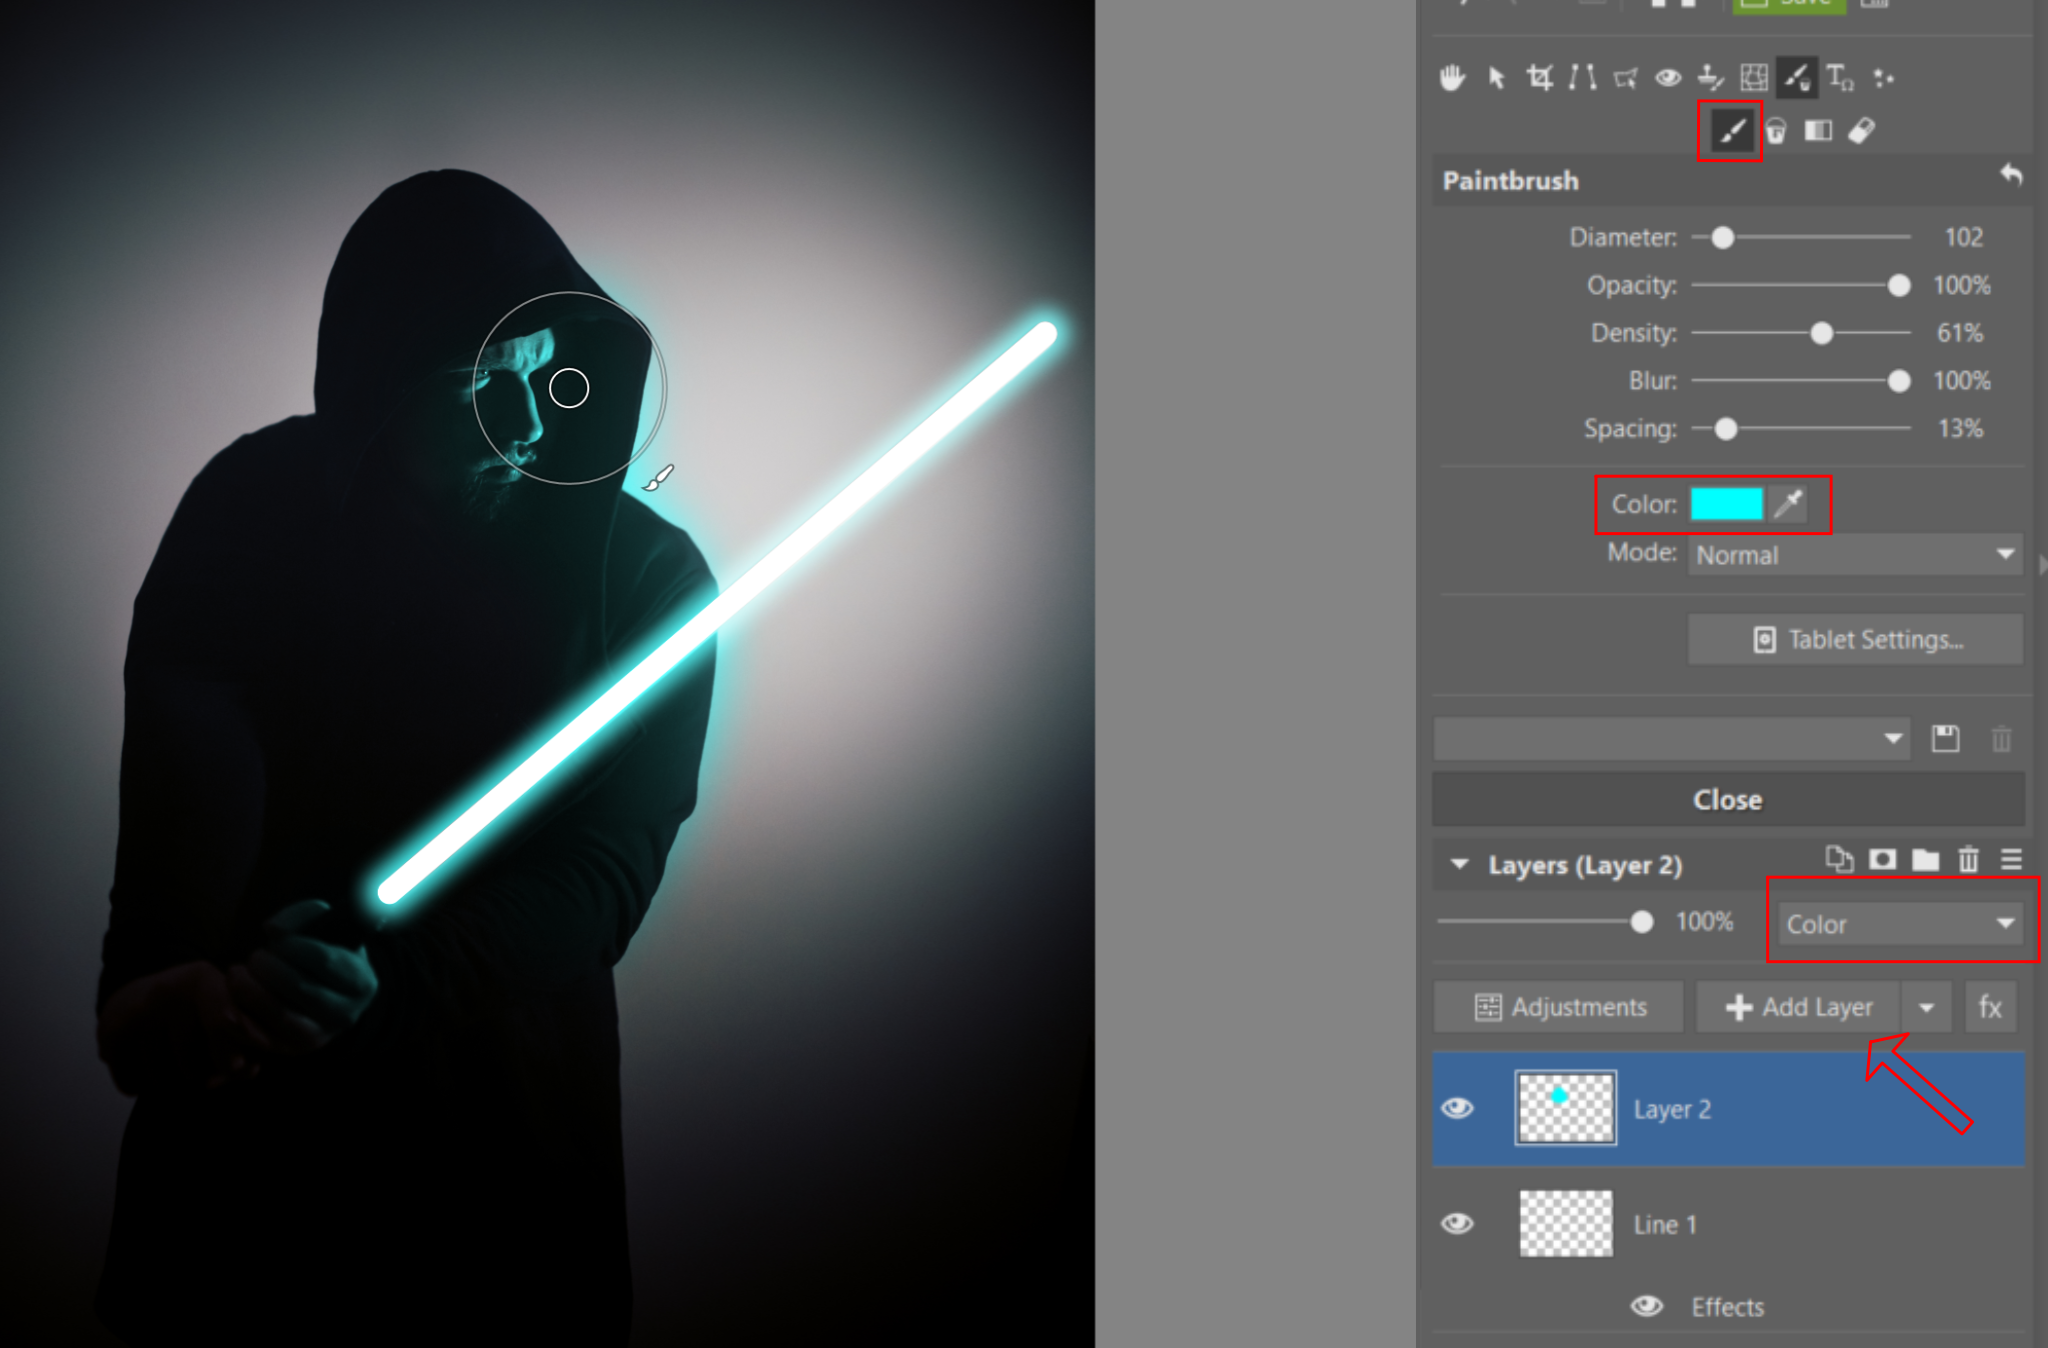 Create Your Own Lightsaber Photo - brush